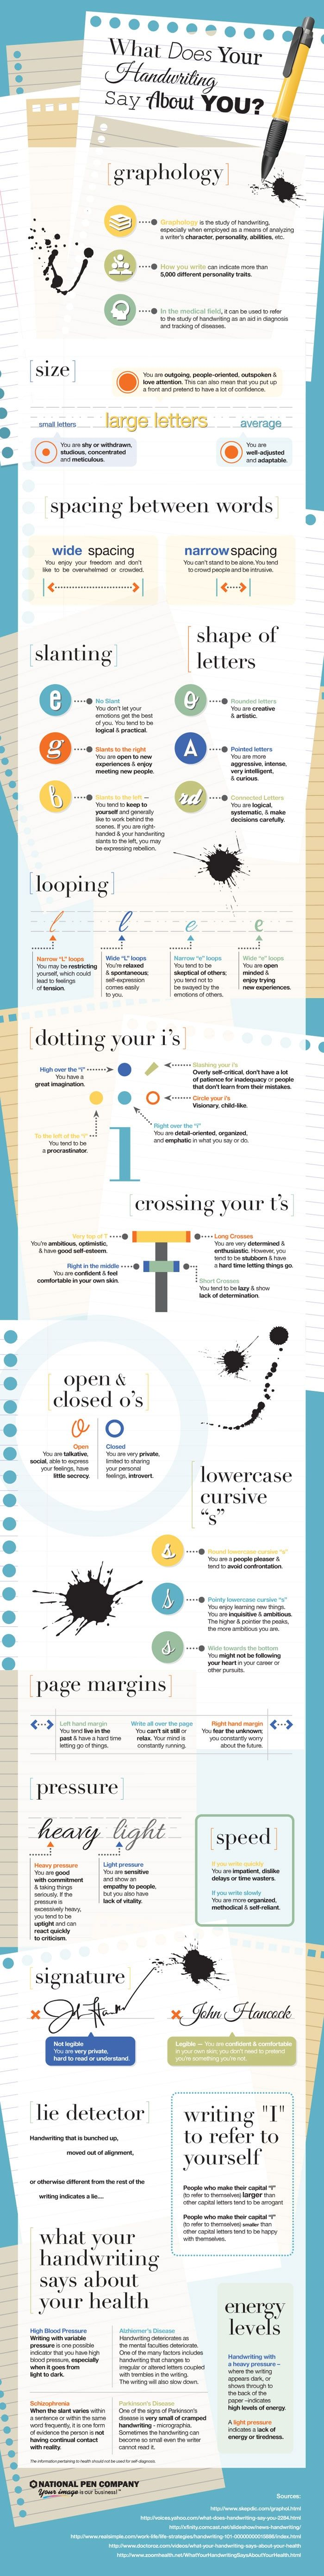 Did you know that how you write can indicate more than 5,000 personality traits? #infographic